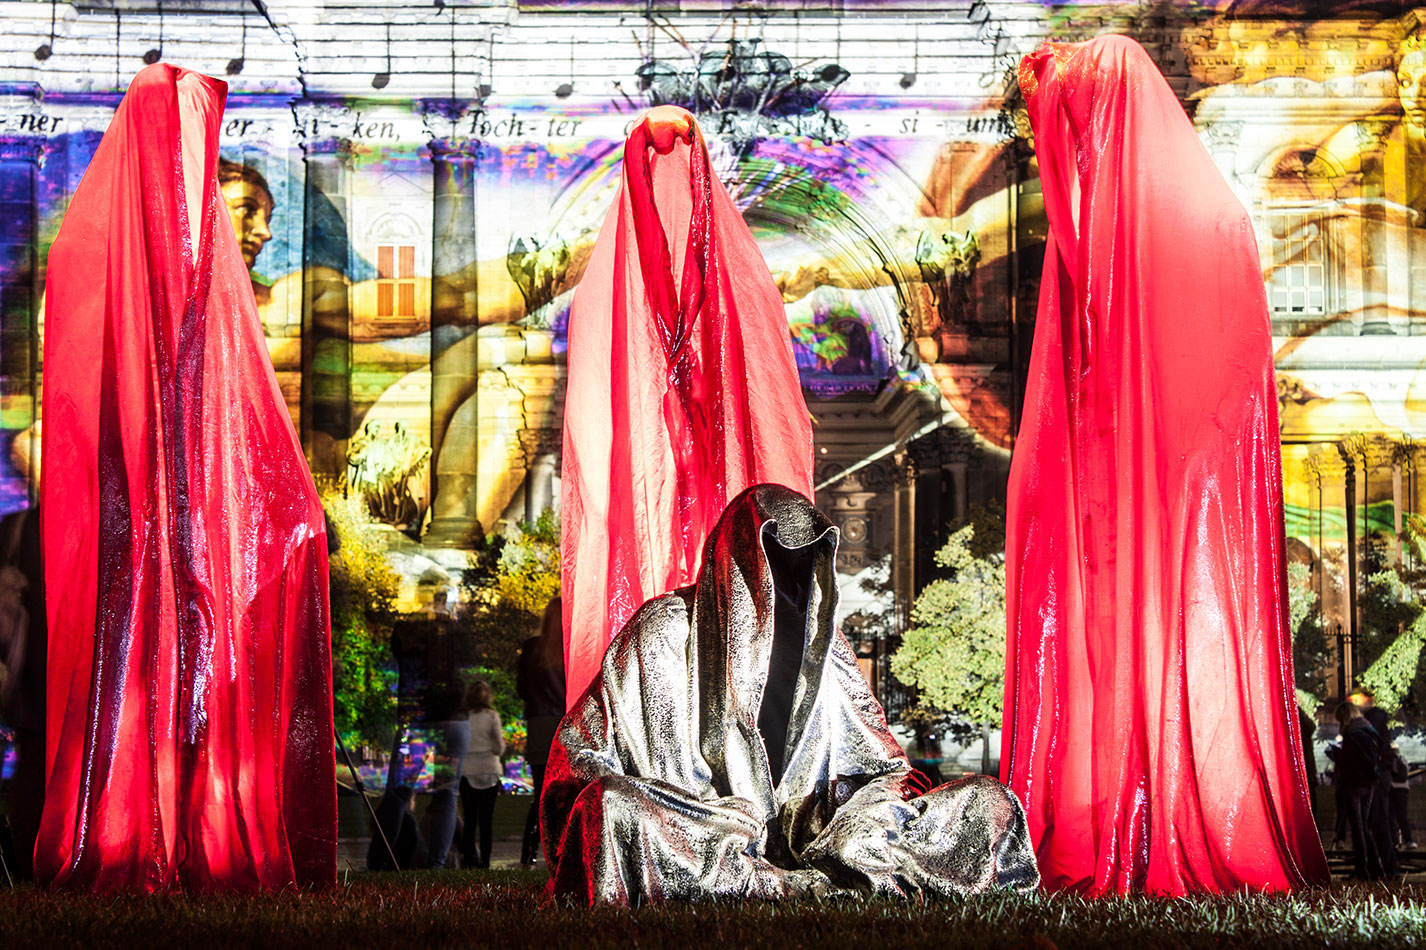 festival-of-lights-old-museum-cathedral-berlin-light-art-show-exhibition-lumina-guardians-of-time-manfred-kili-kielnhofer-contemporary-arts-design-sculpture-3052